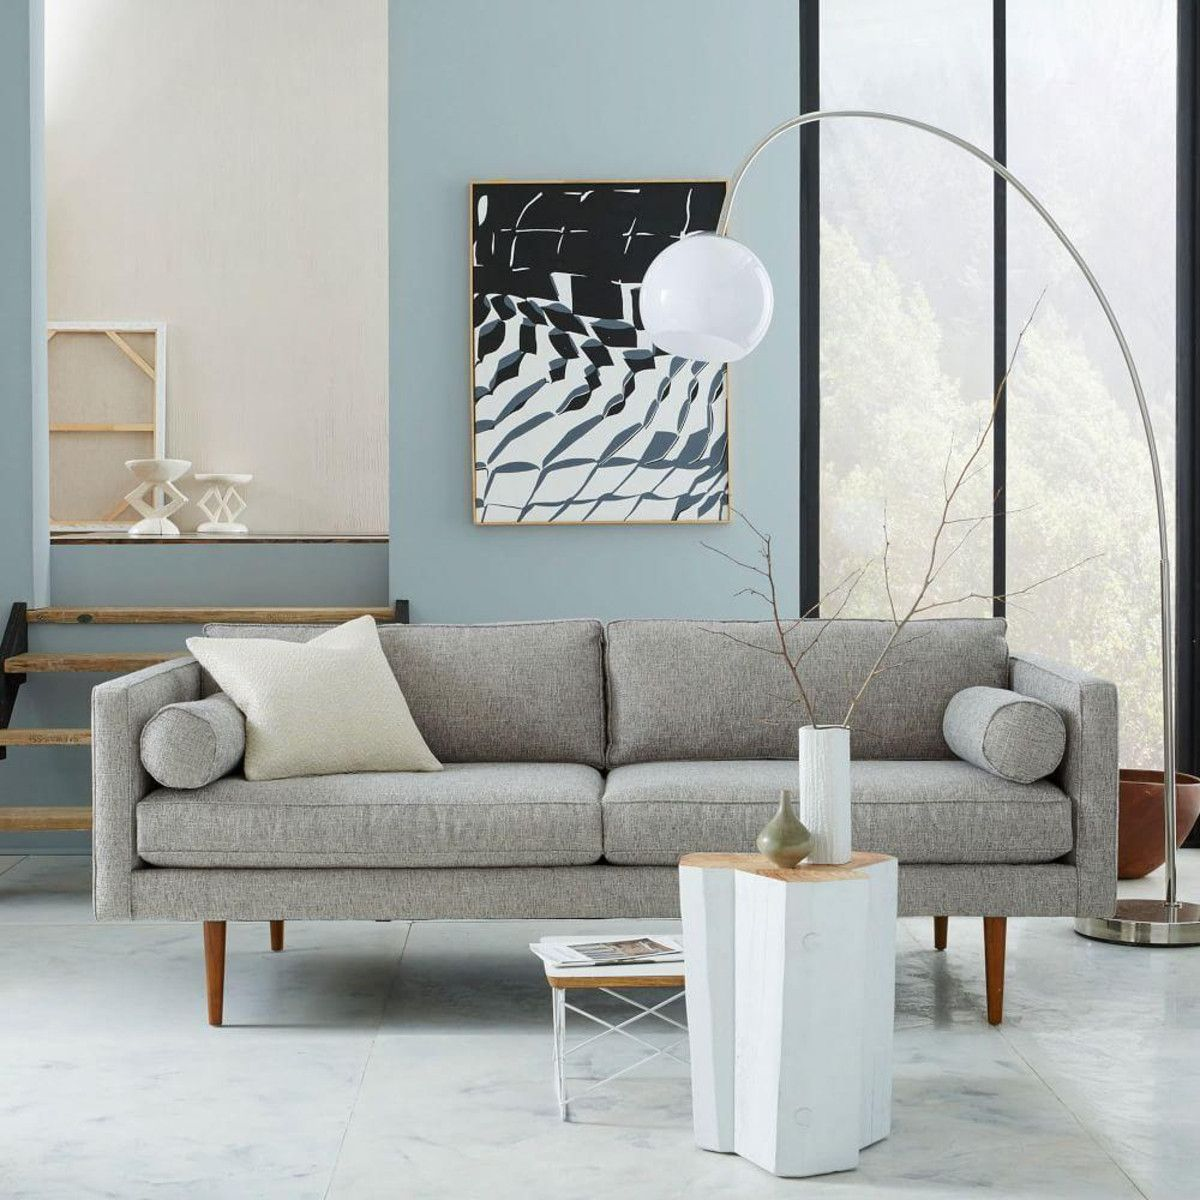 West Elm Monroe Sofa Similar To CBu0027s Petrie. Pro I Still Love 10 Years  Later And It It Is Only 6 Inches Longer Than Current Couch.